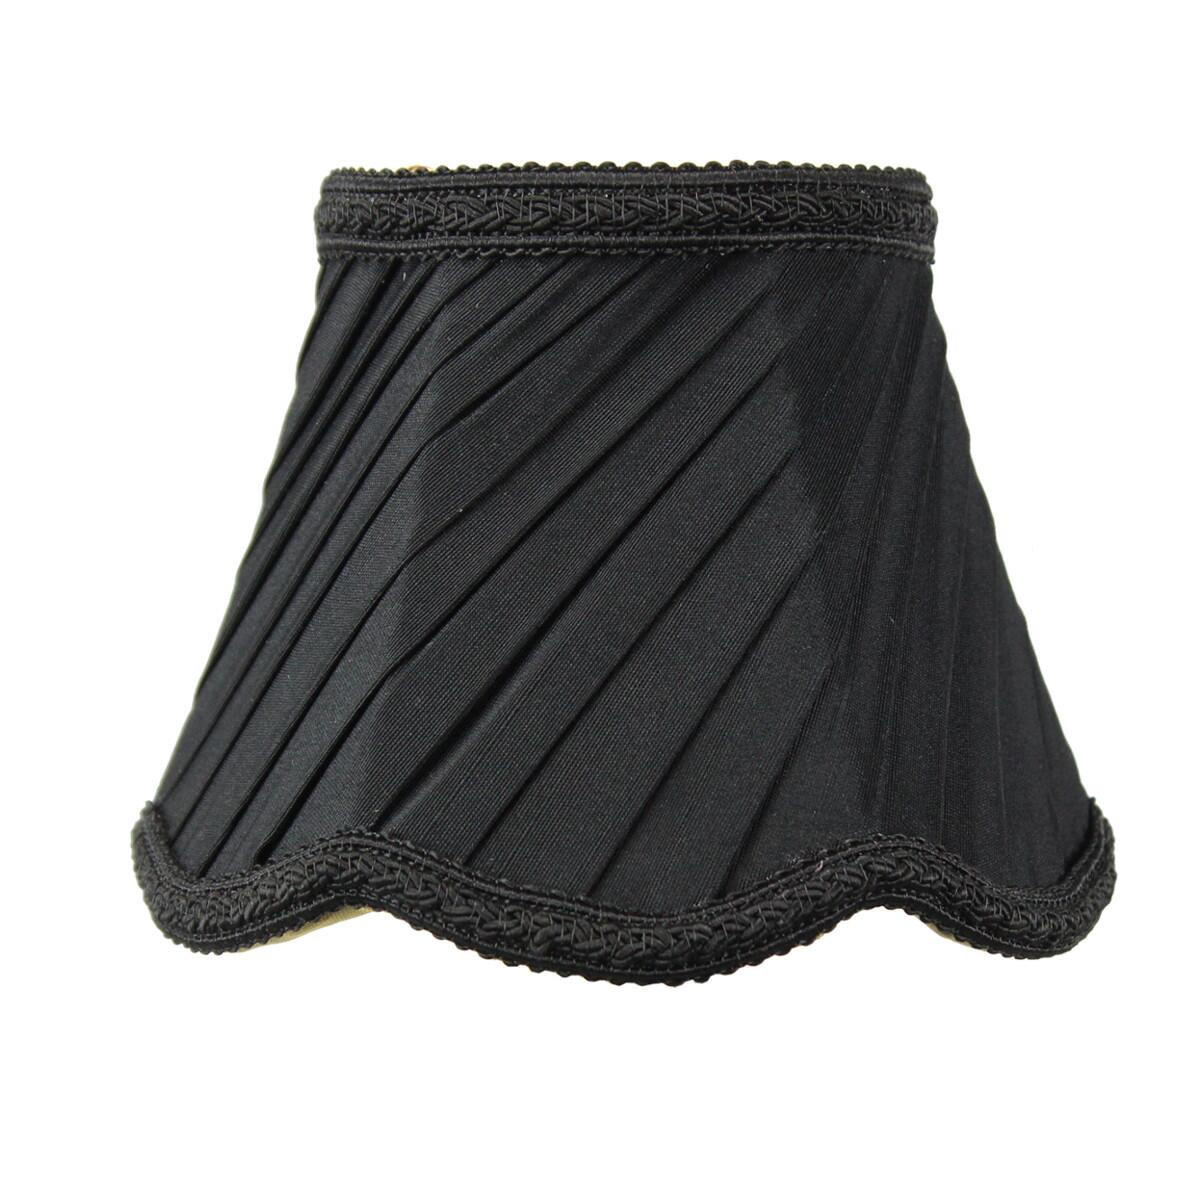 3x5x4 Pleated Scallop Clip-on Candelabra Lampshade Black Fabric